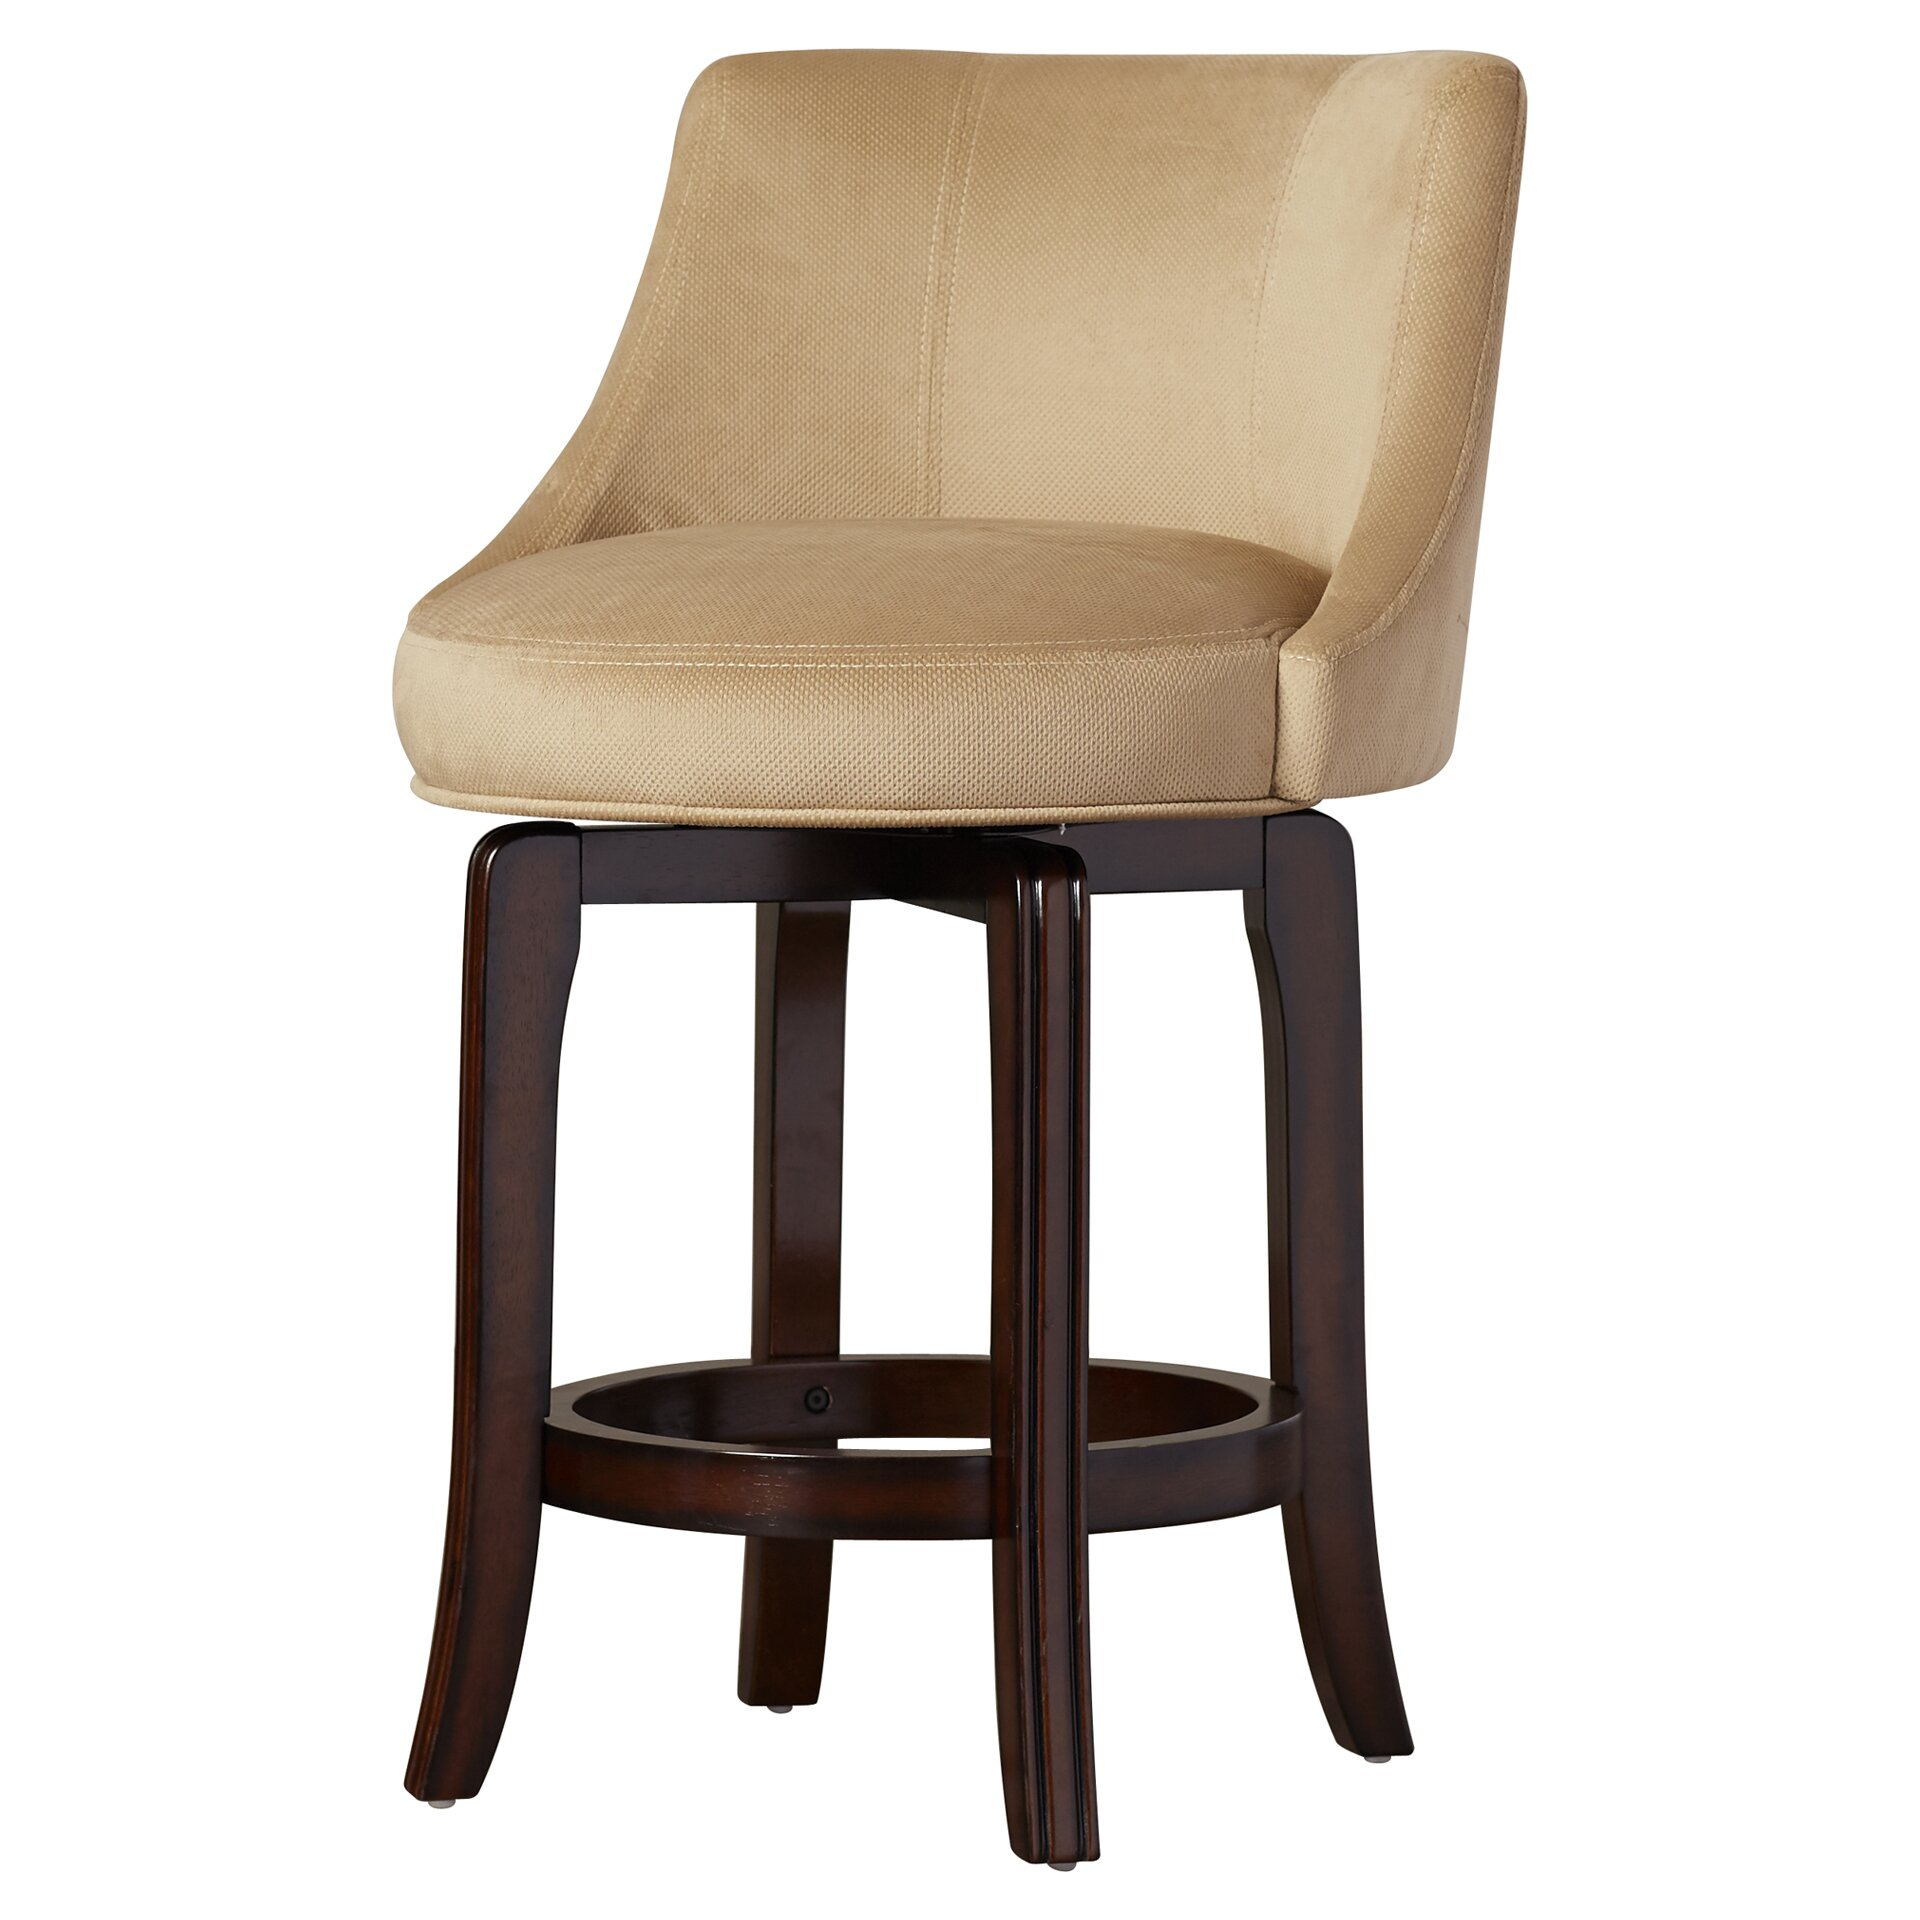 Darby Home Co Grandwood 25 25 Quot Swivel Bar Stool Amp Reviews